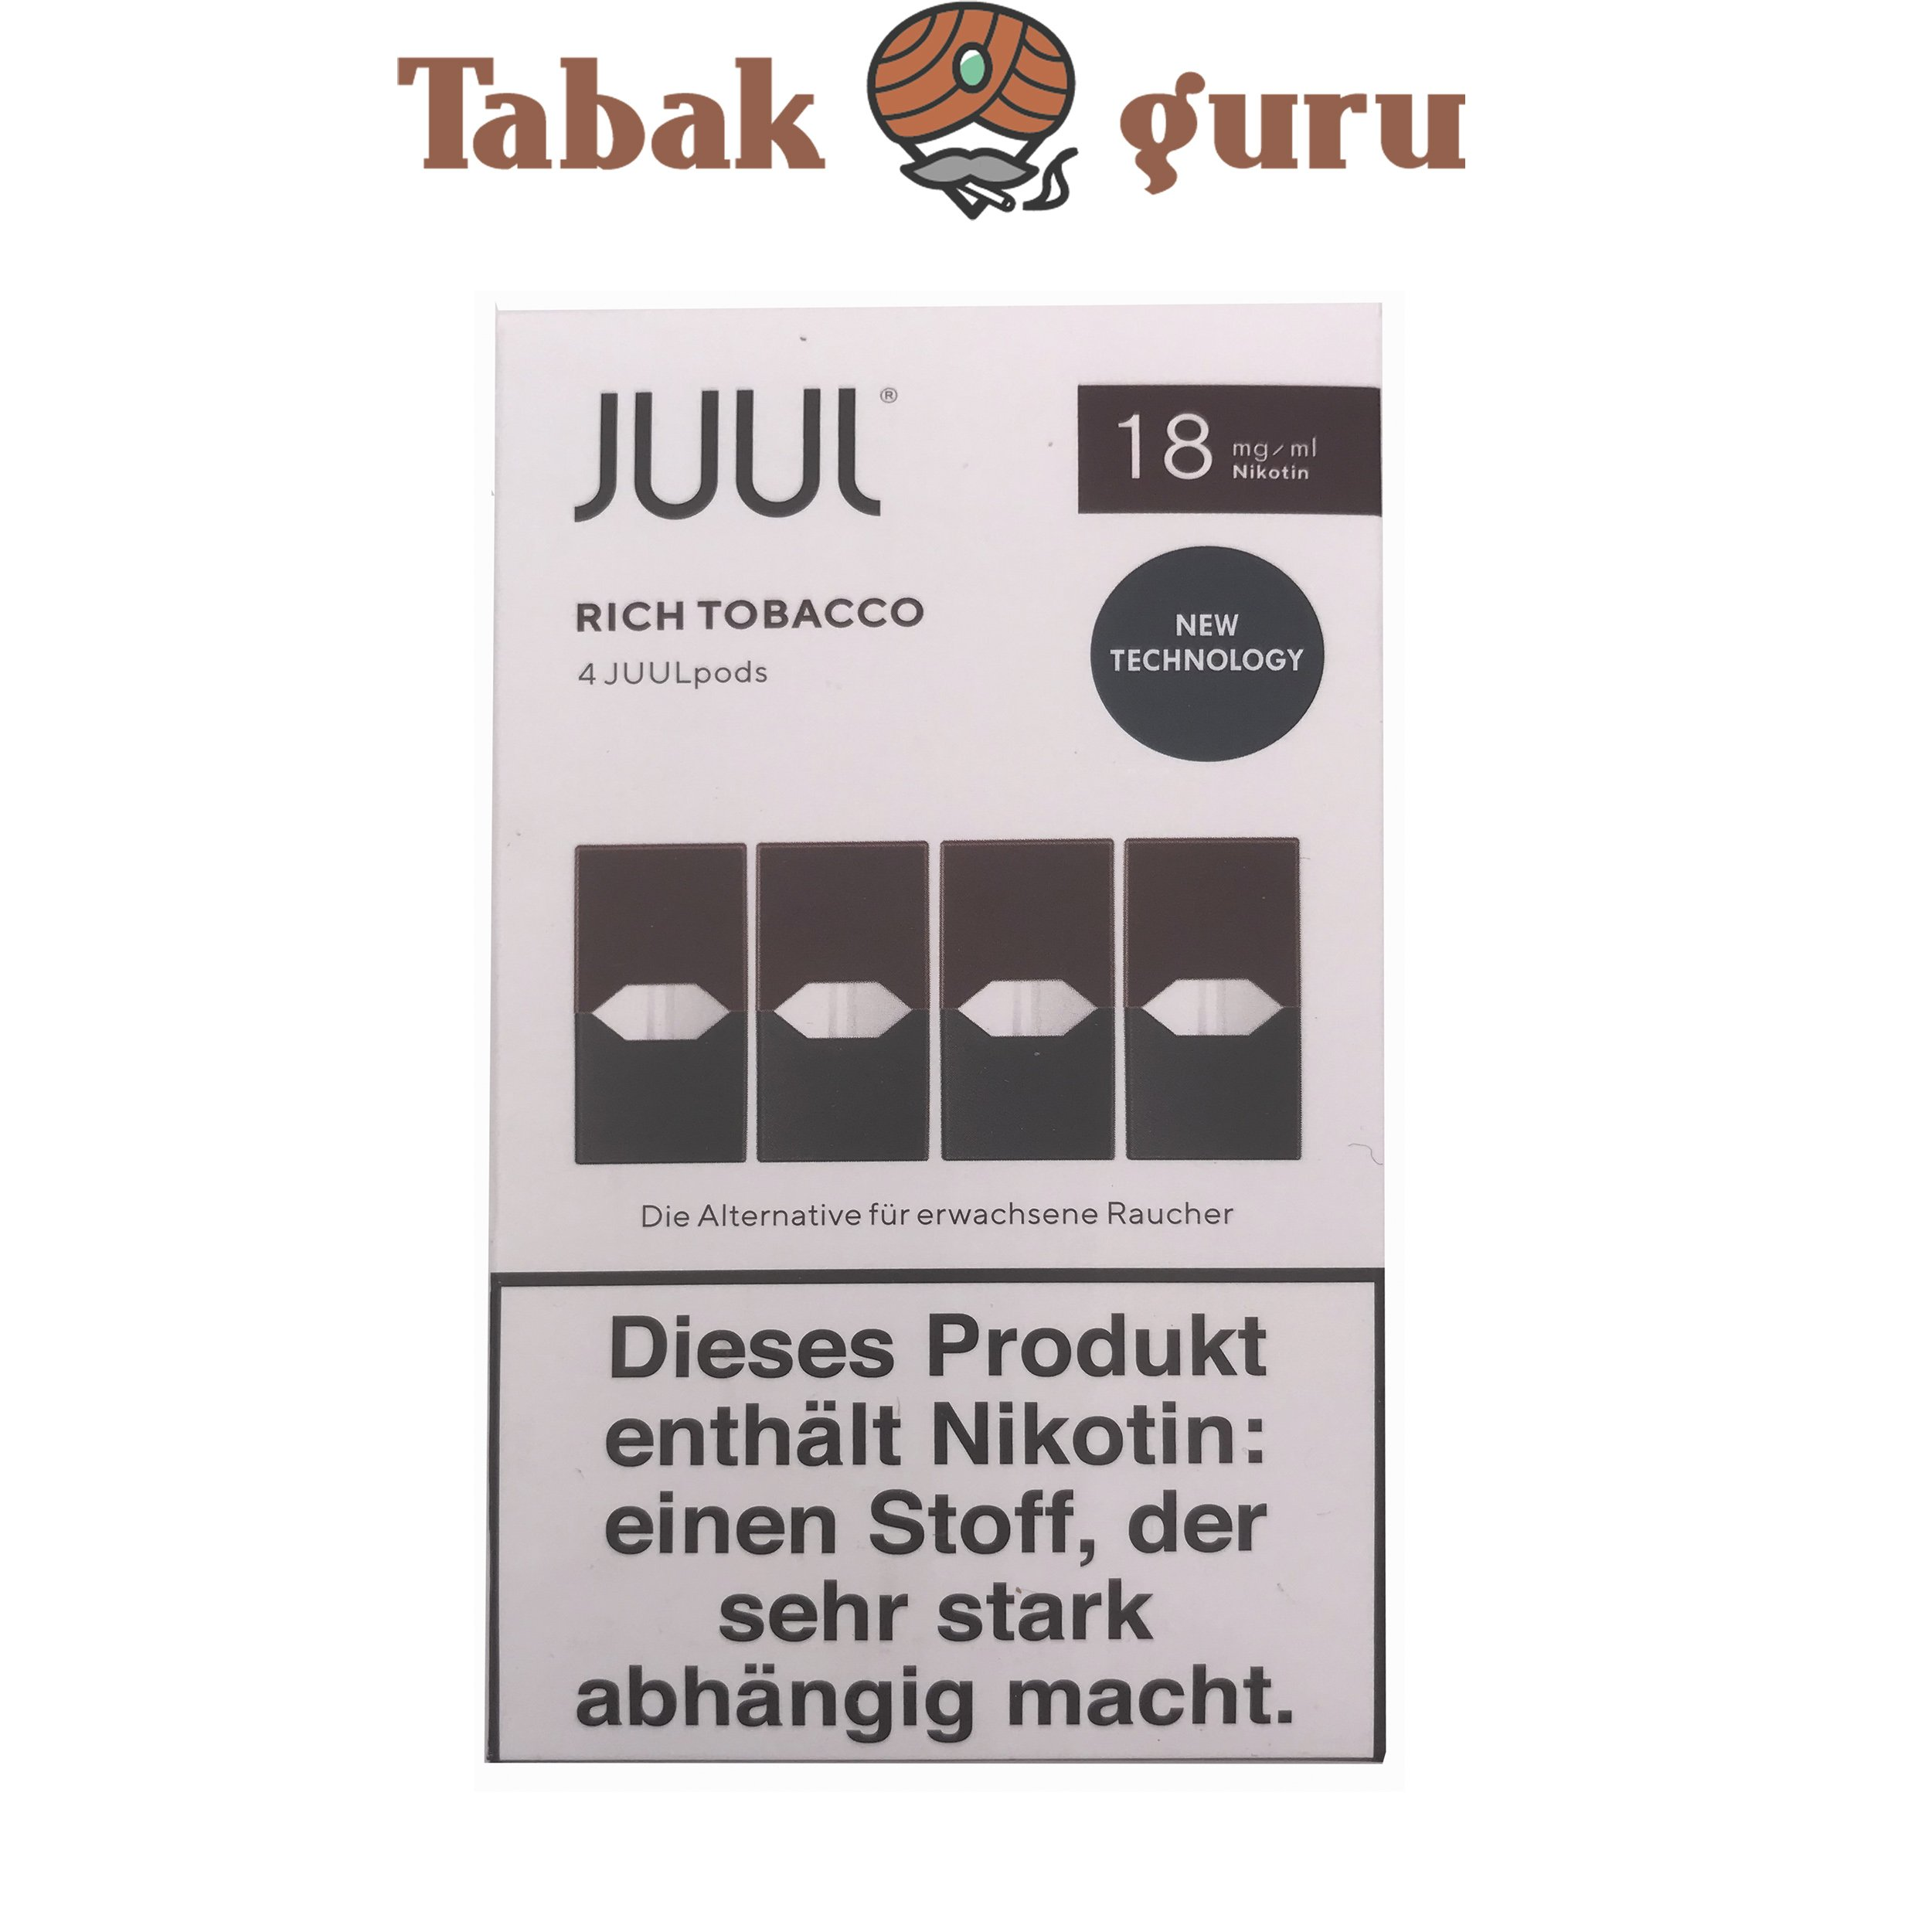 JUUL 3 Packungen Mint, Rich Tobacco, Royal Creme á 4 Pods 18mg